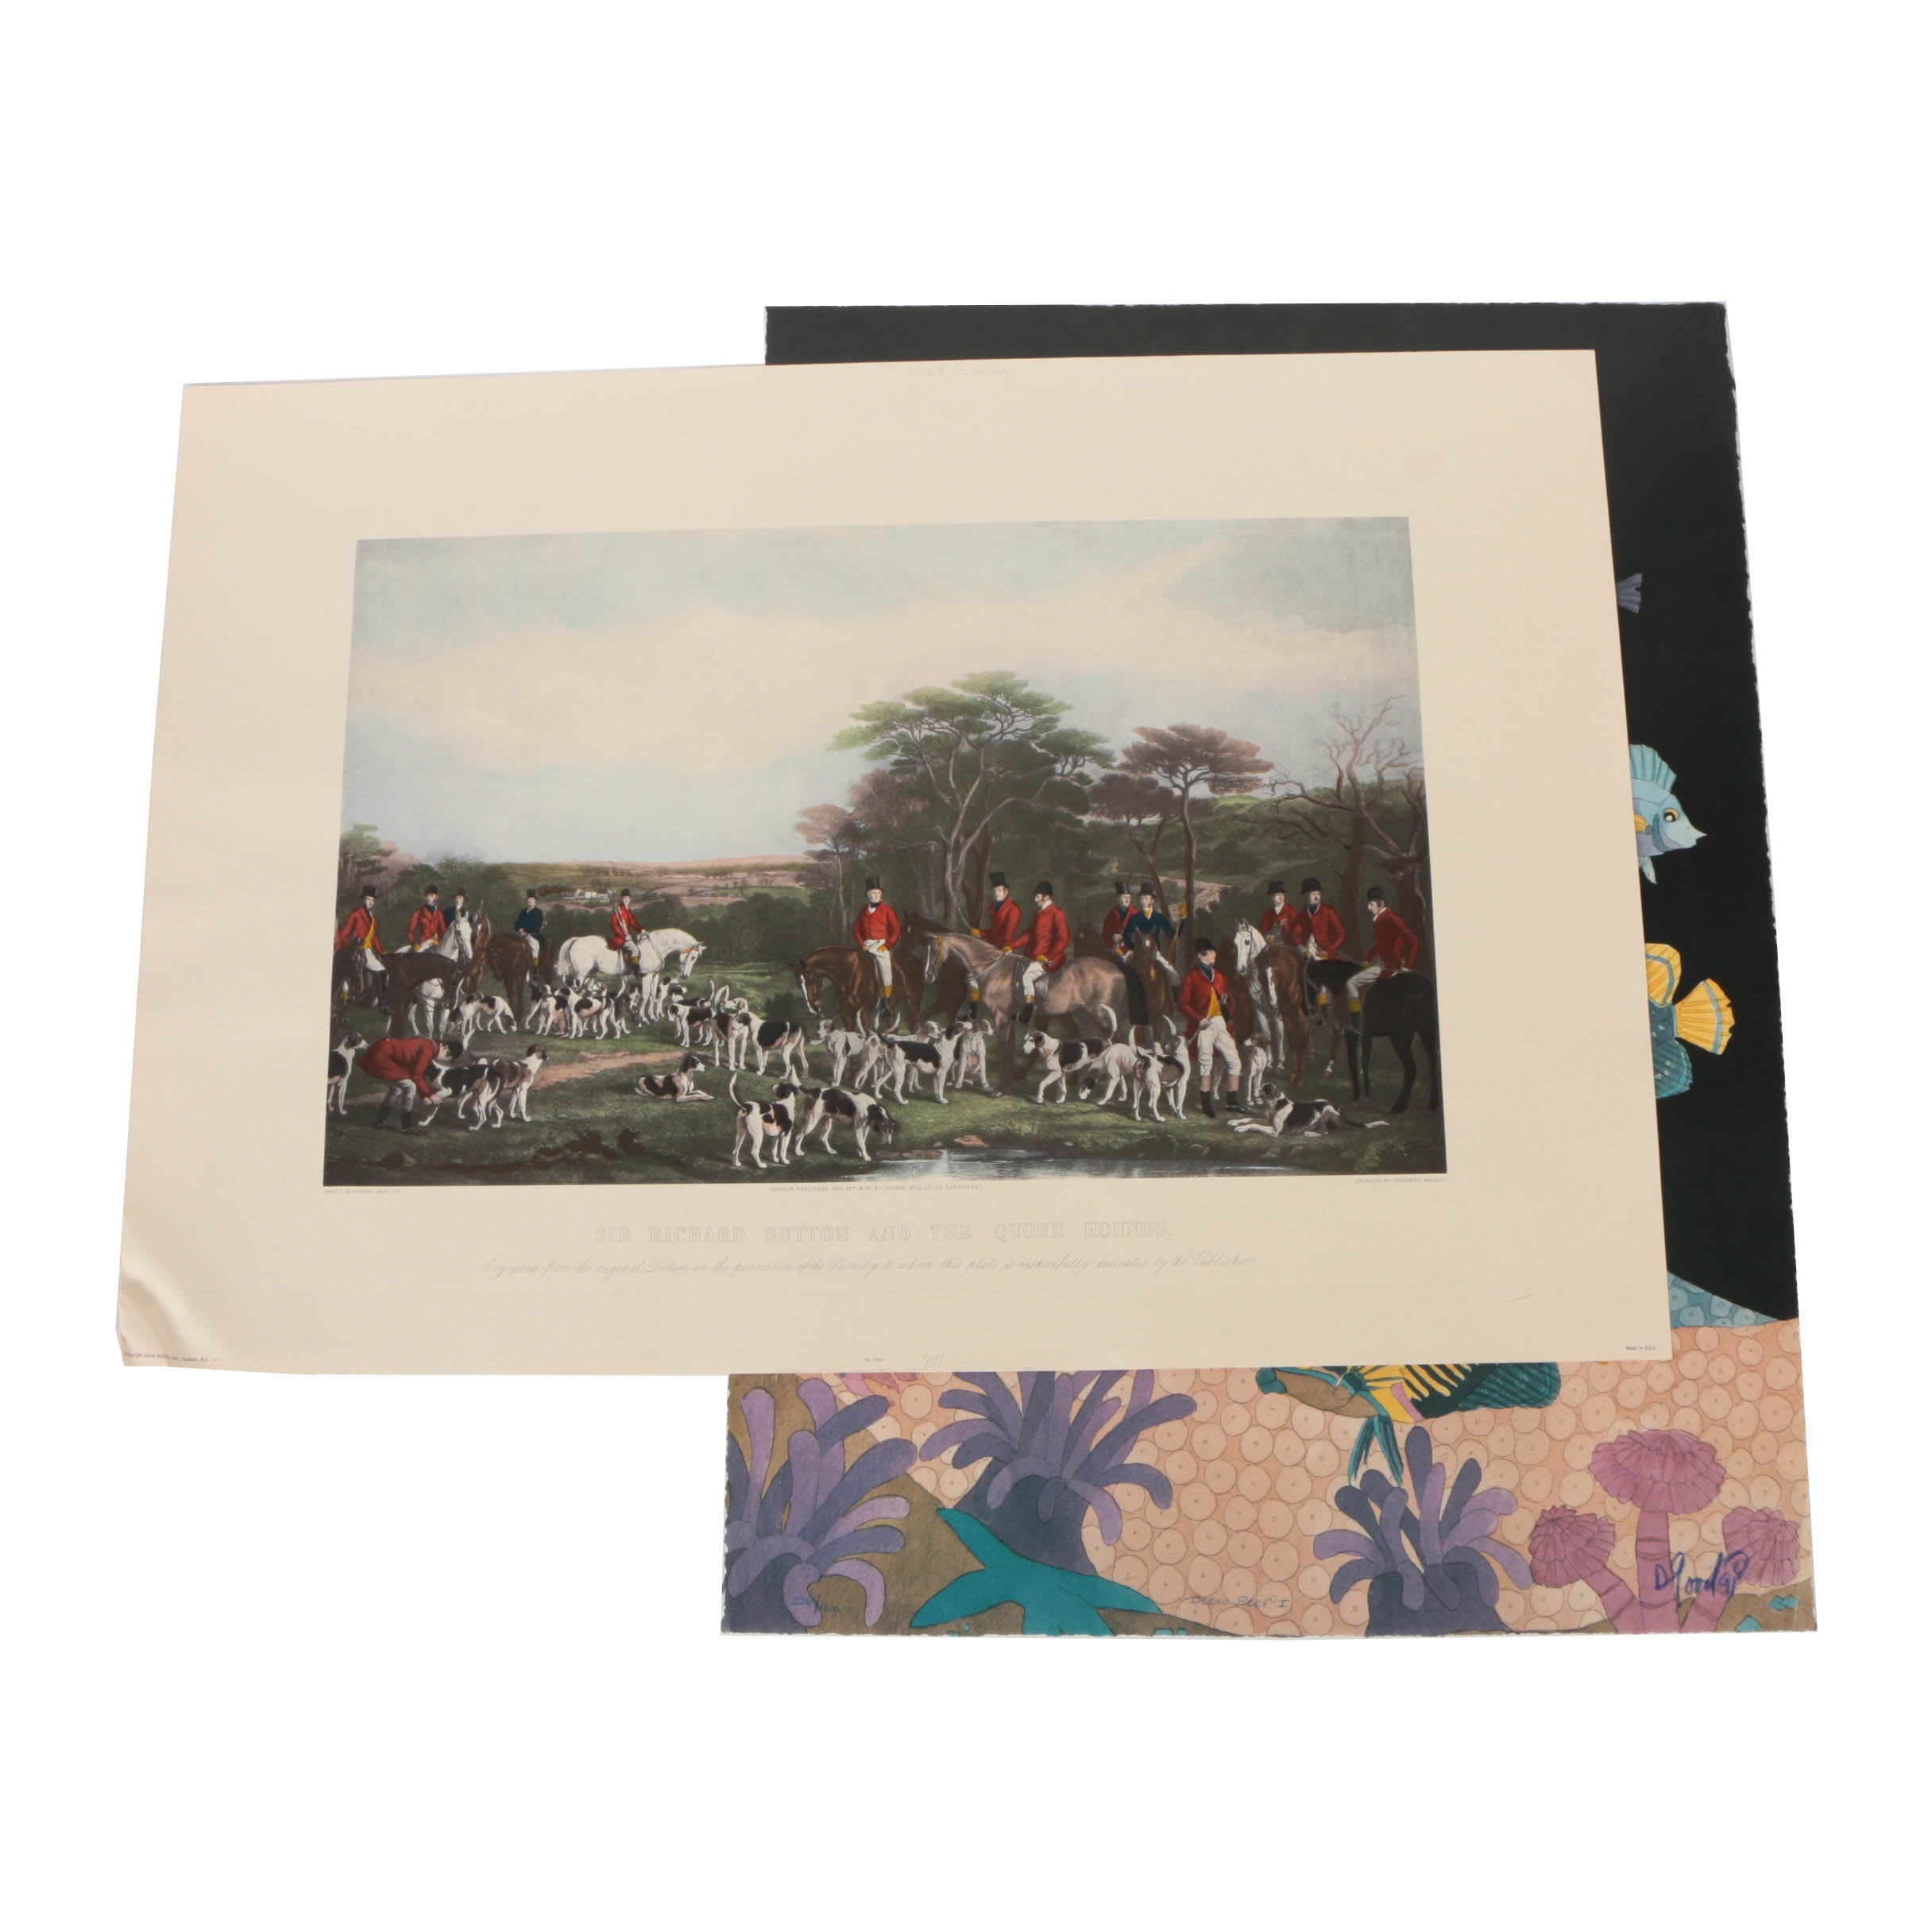 Offset Lithograph and Halftone Print on Paper Aquatic and Fox Hunting Scenes